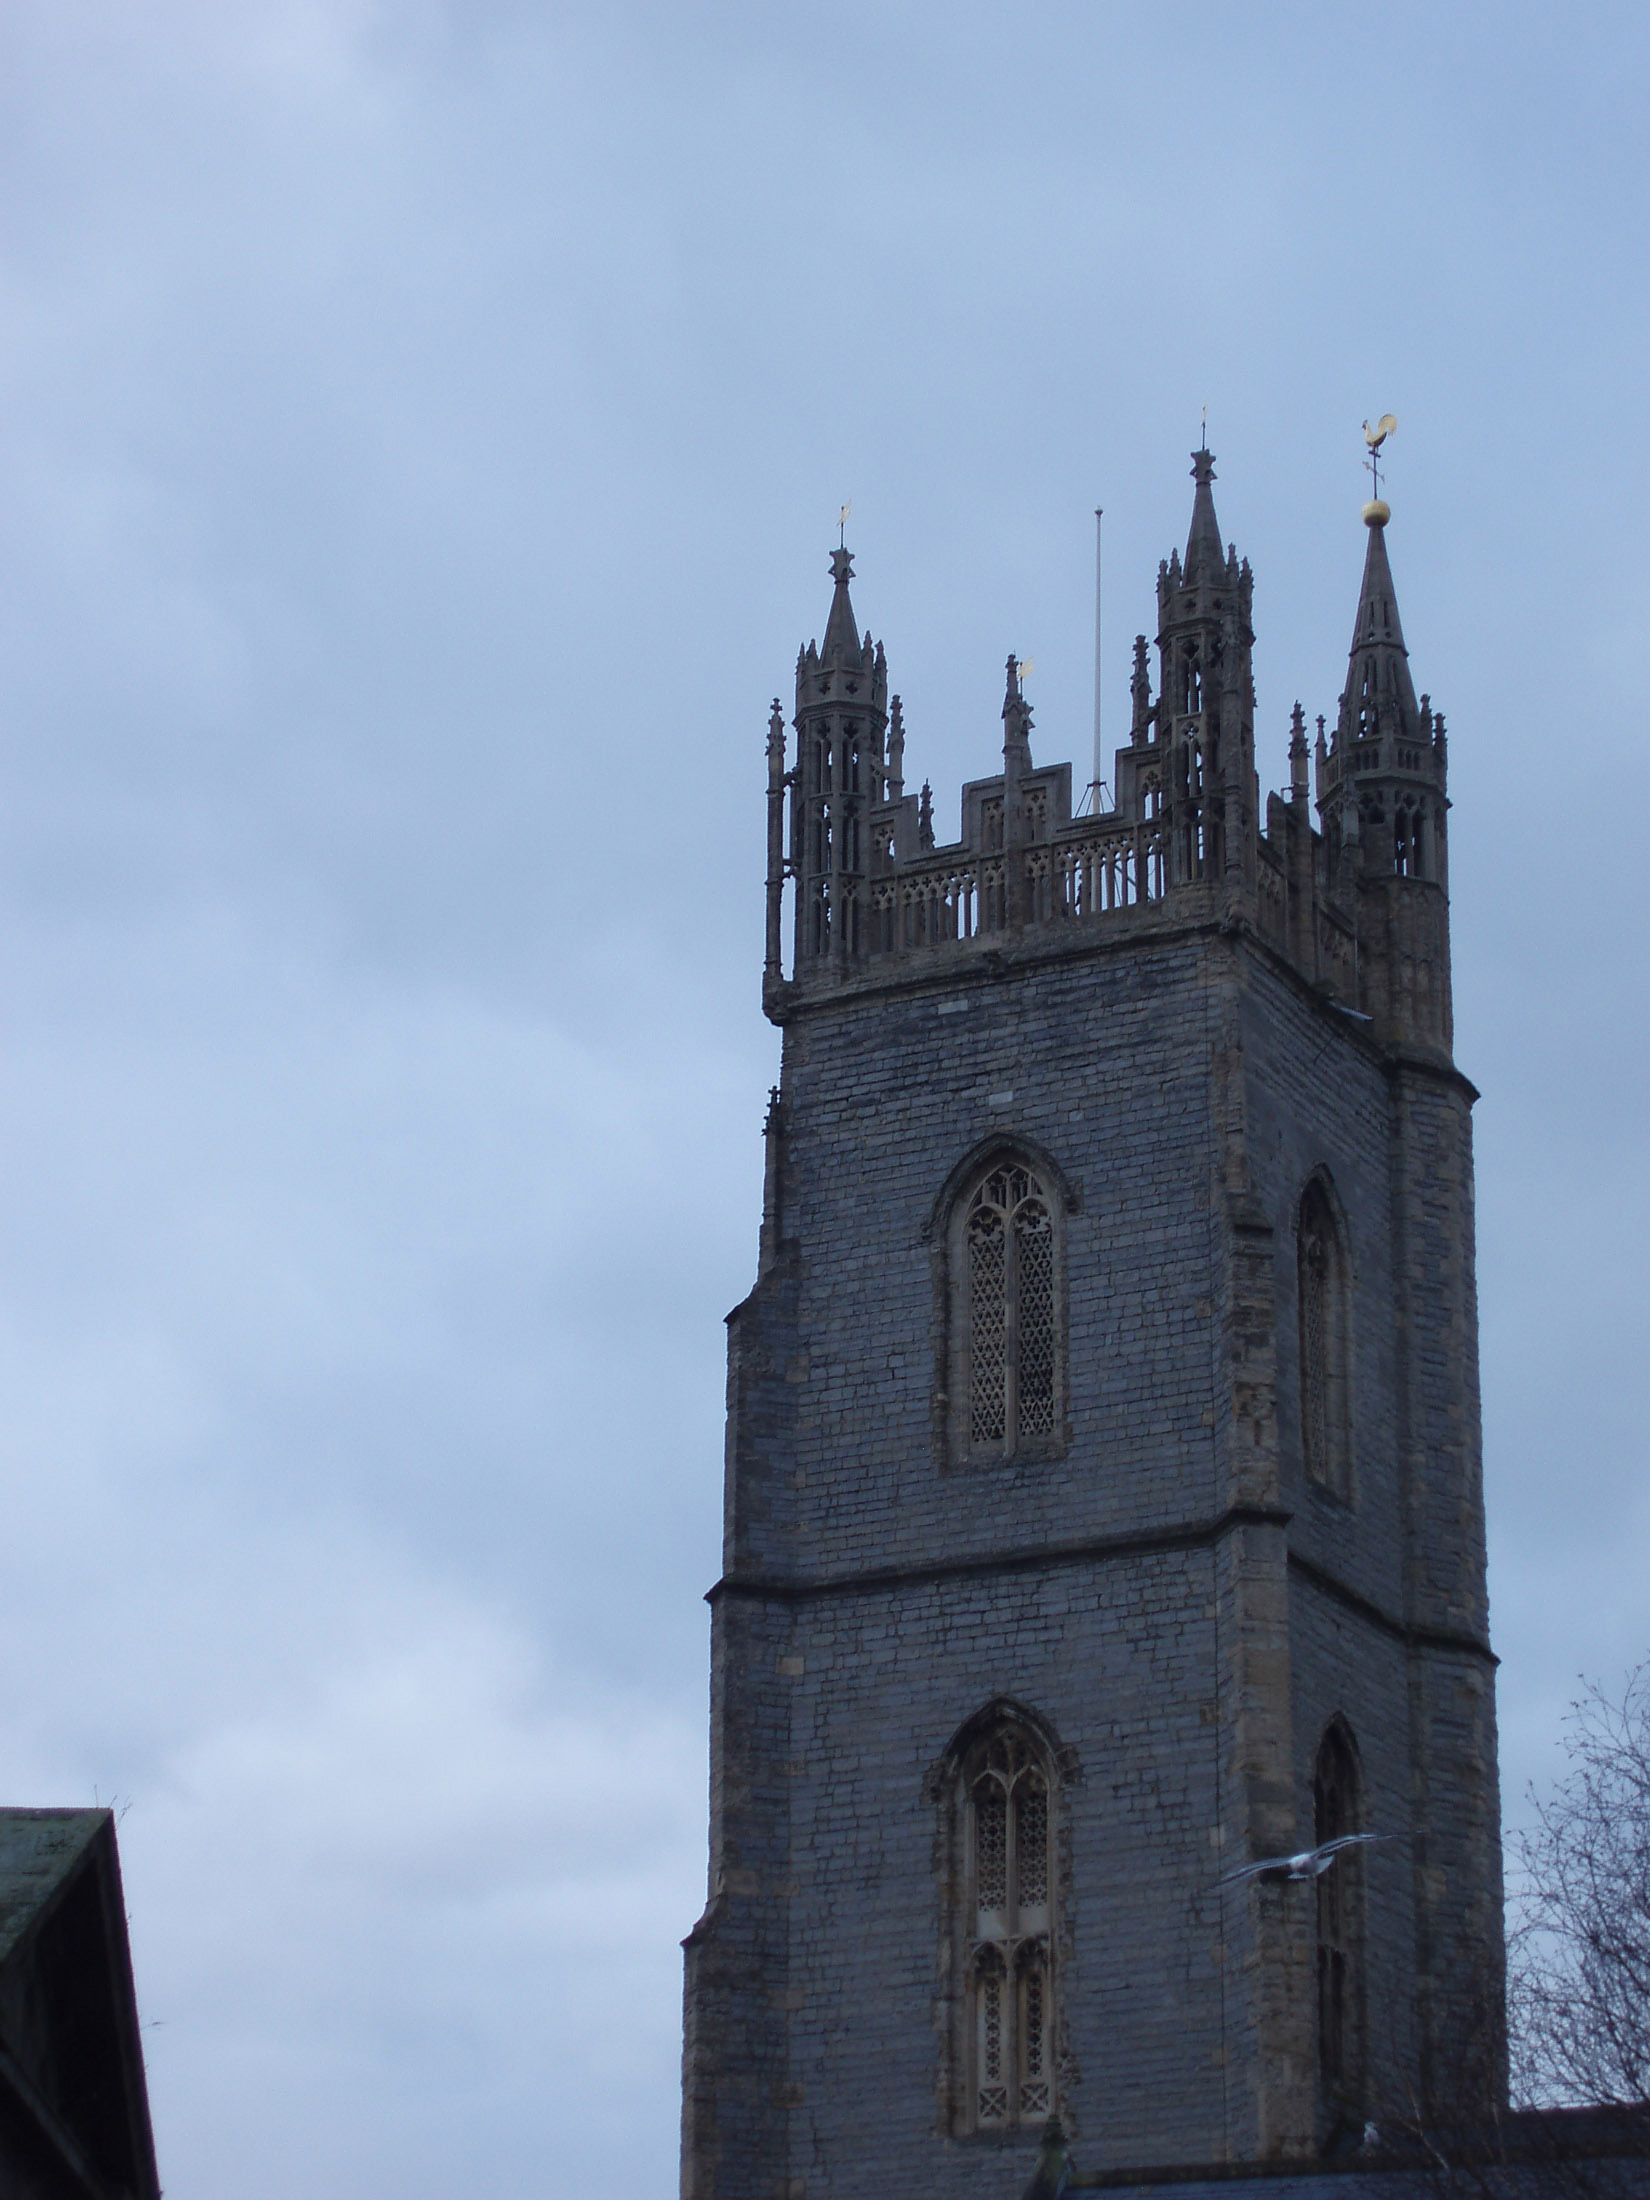 Historic Architectural edifice - St John the Baptist Church in Cardiff, Wales.